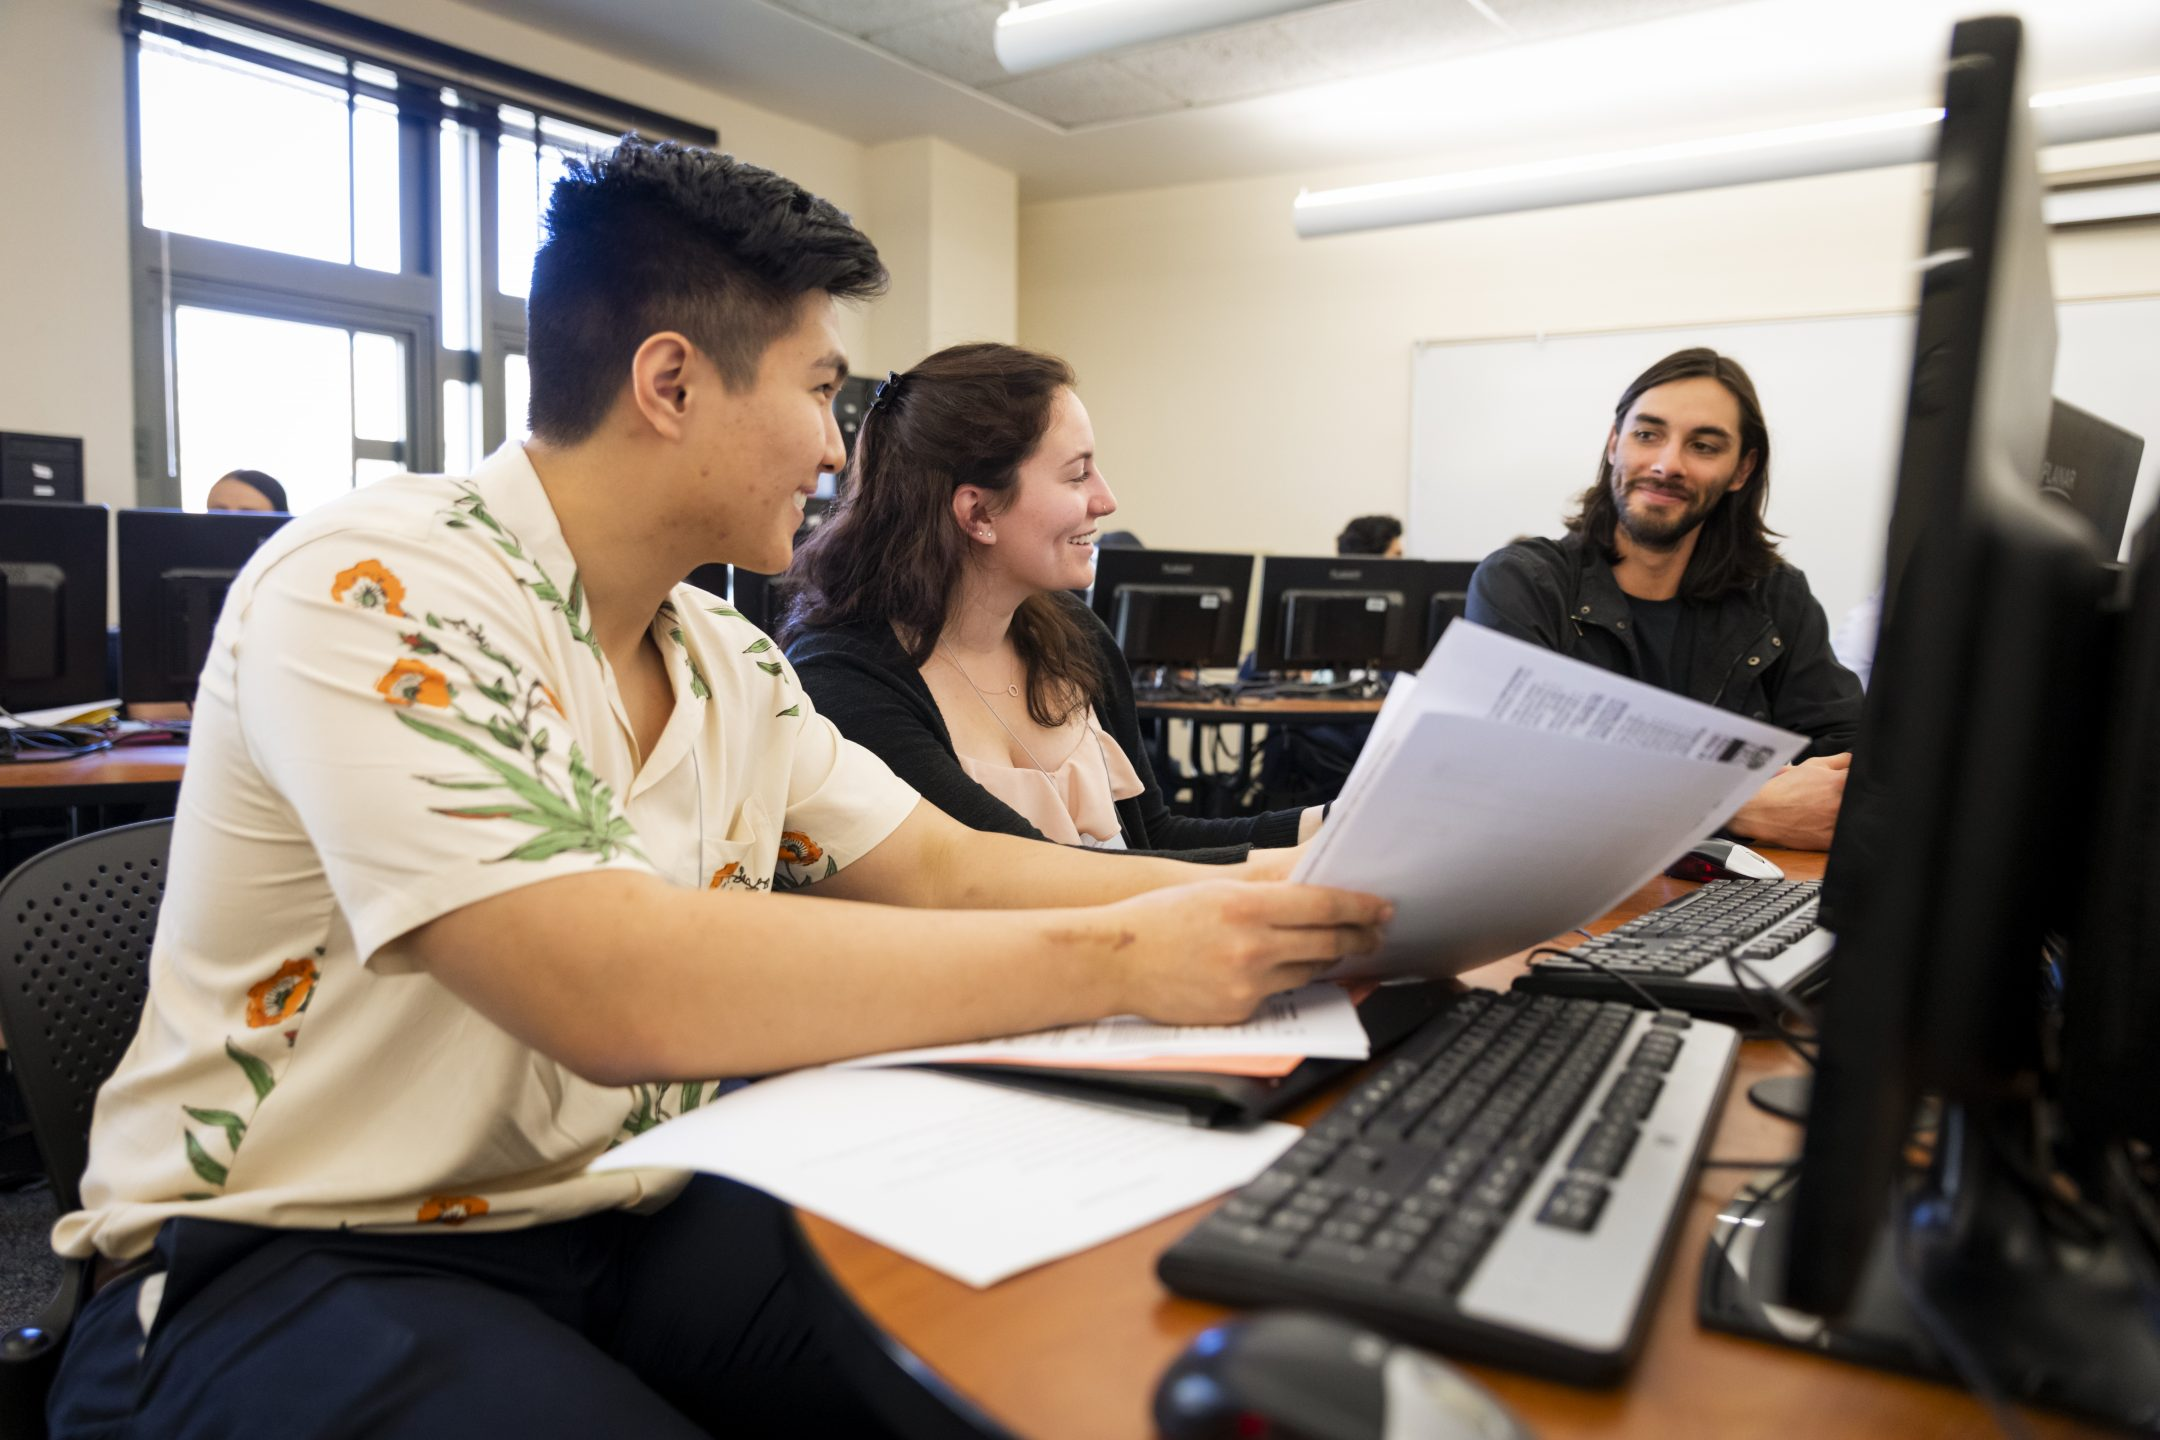 Two students sit at a desk reviewing tax forms with a young man.